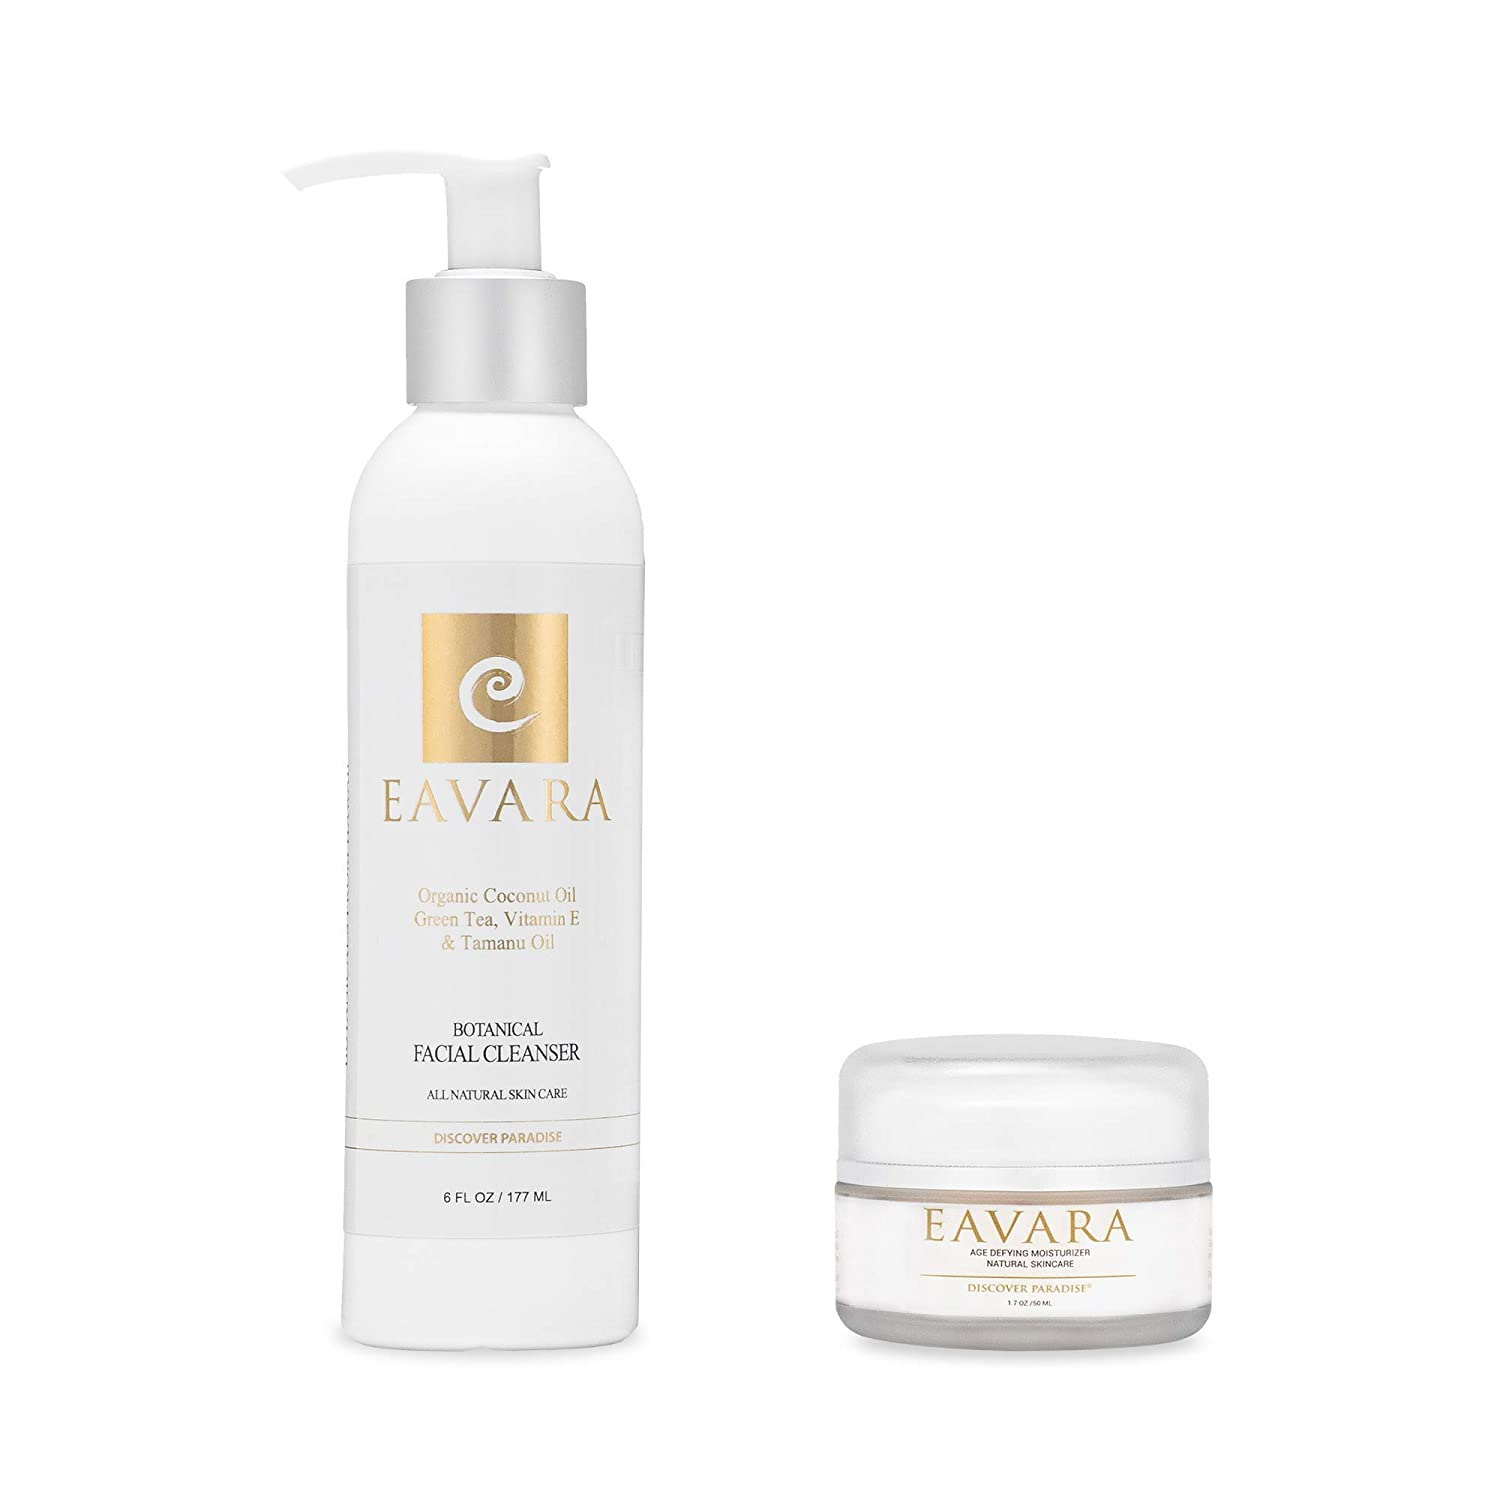 Award Winning Organic Facial Cleanser & Botanical Anti Aging Daily Moisturizer Cream   Natural Wrinkle Firming Skin Care   Hyaluronic   Organic Kukui Oil & Shea Butter   No Parabens or or or Sulfates